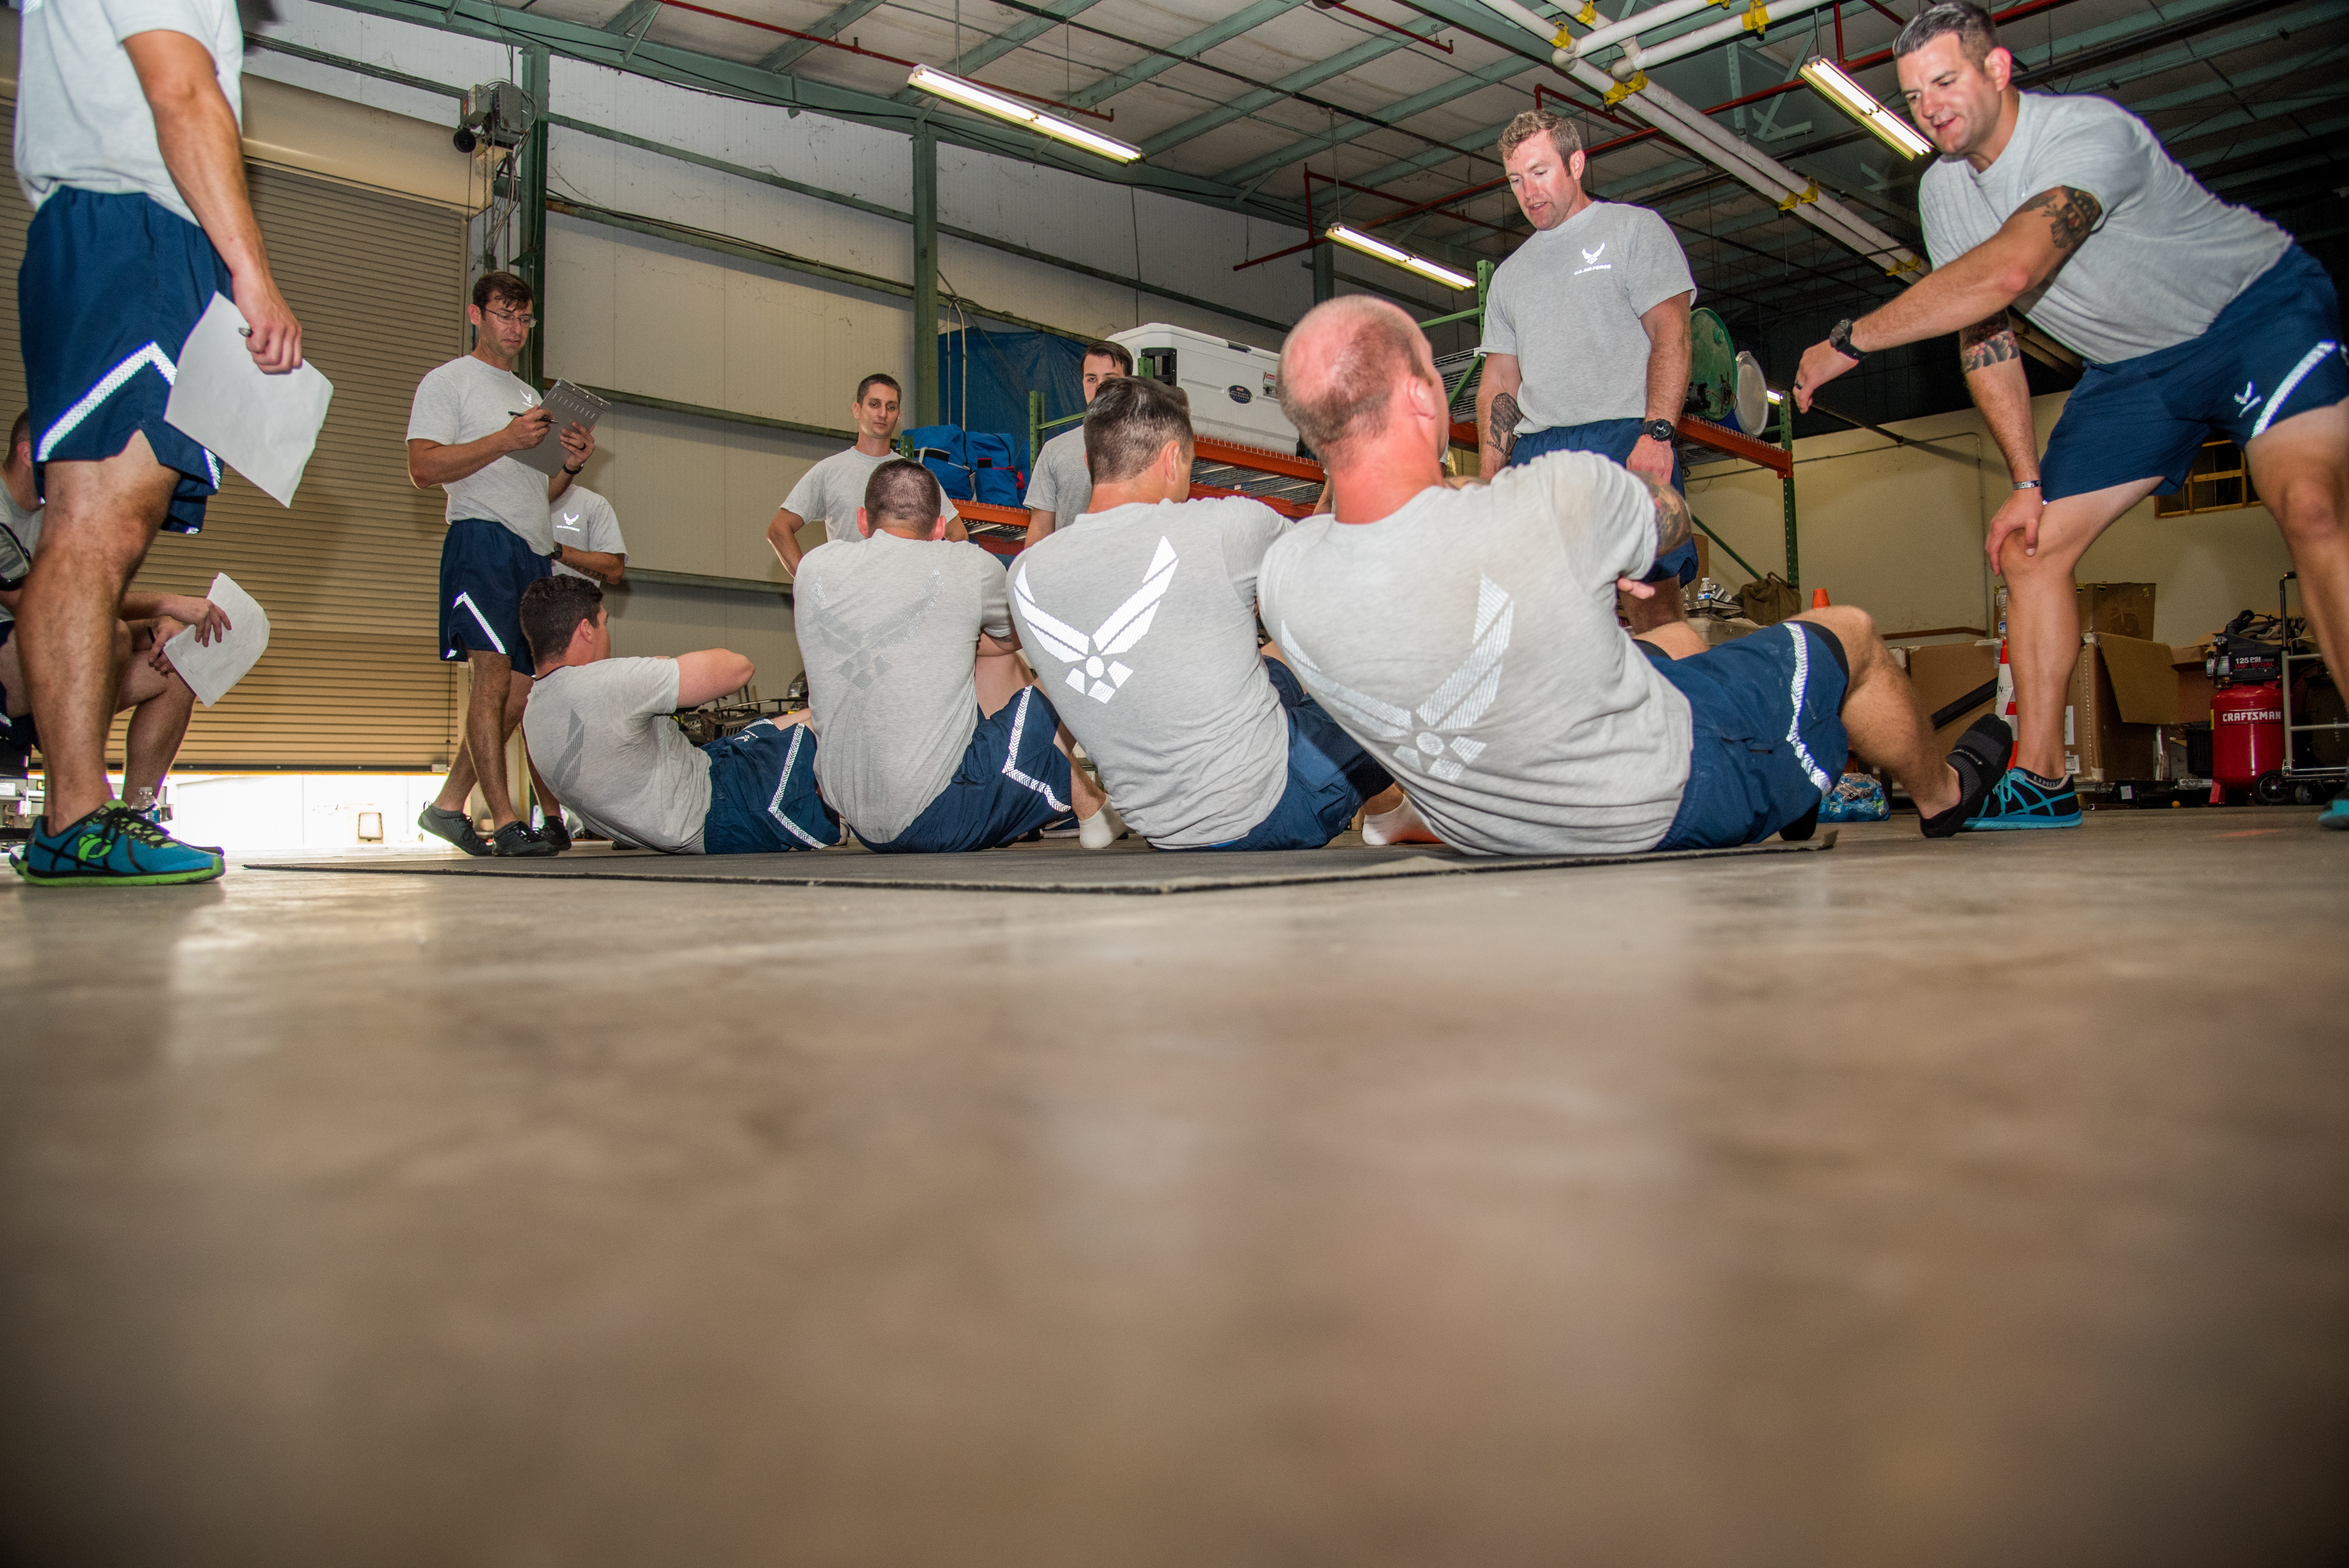 Air Force administers new fitness prototype at Dover AFB